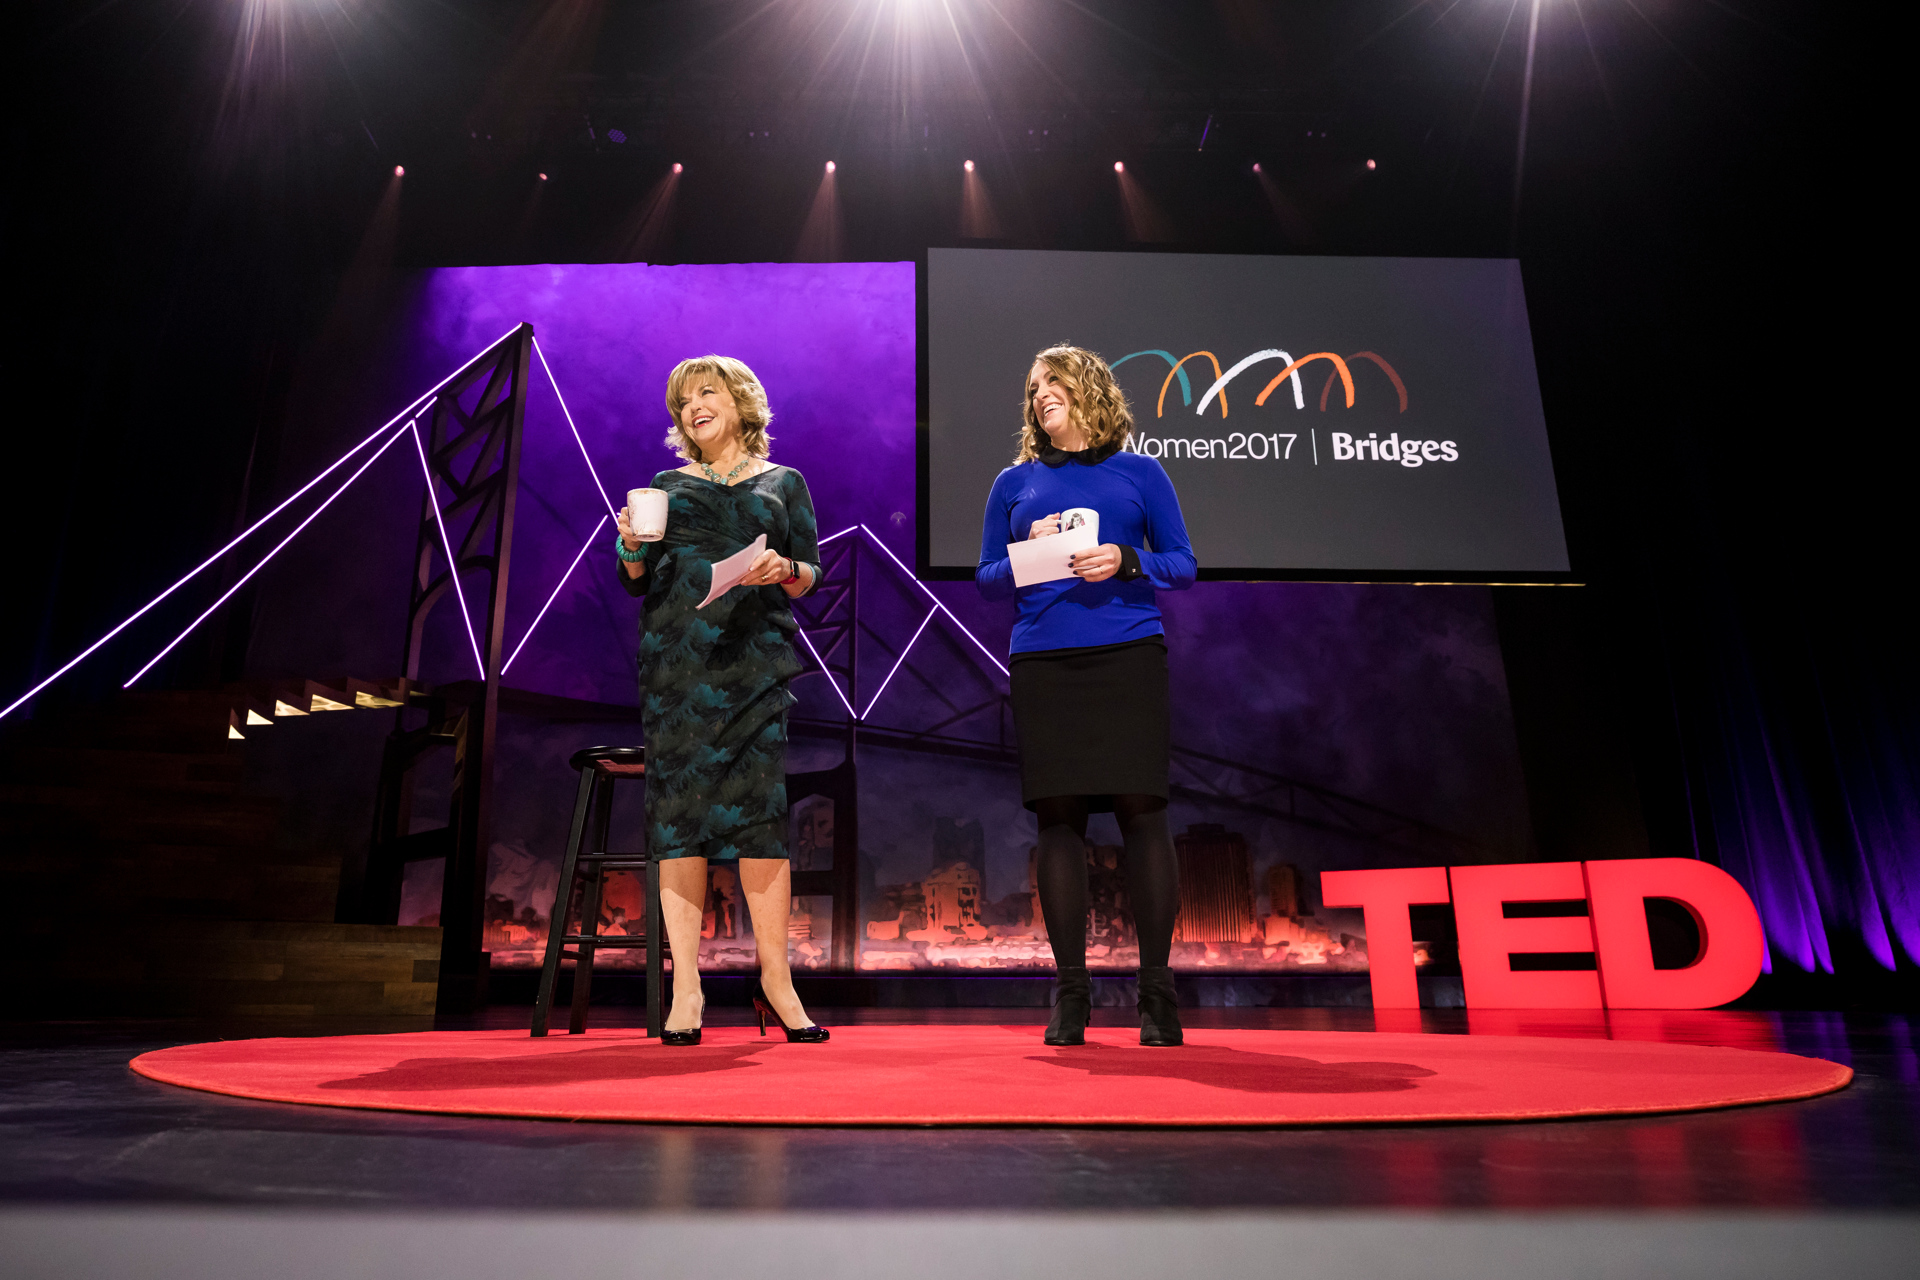 Hosts Pat Mitchell & Kelly Stoetzel speak at TEDWomen 2017 — Bridges, November 1-3, 2017, Orpheum Theatre, New Orleans, Louisiana. Photo: Ryan Lash / TED